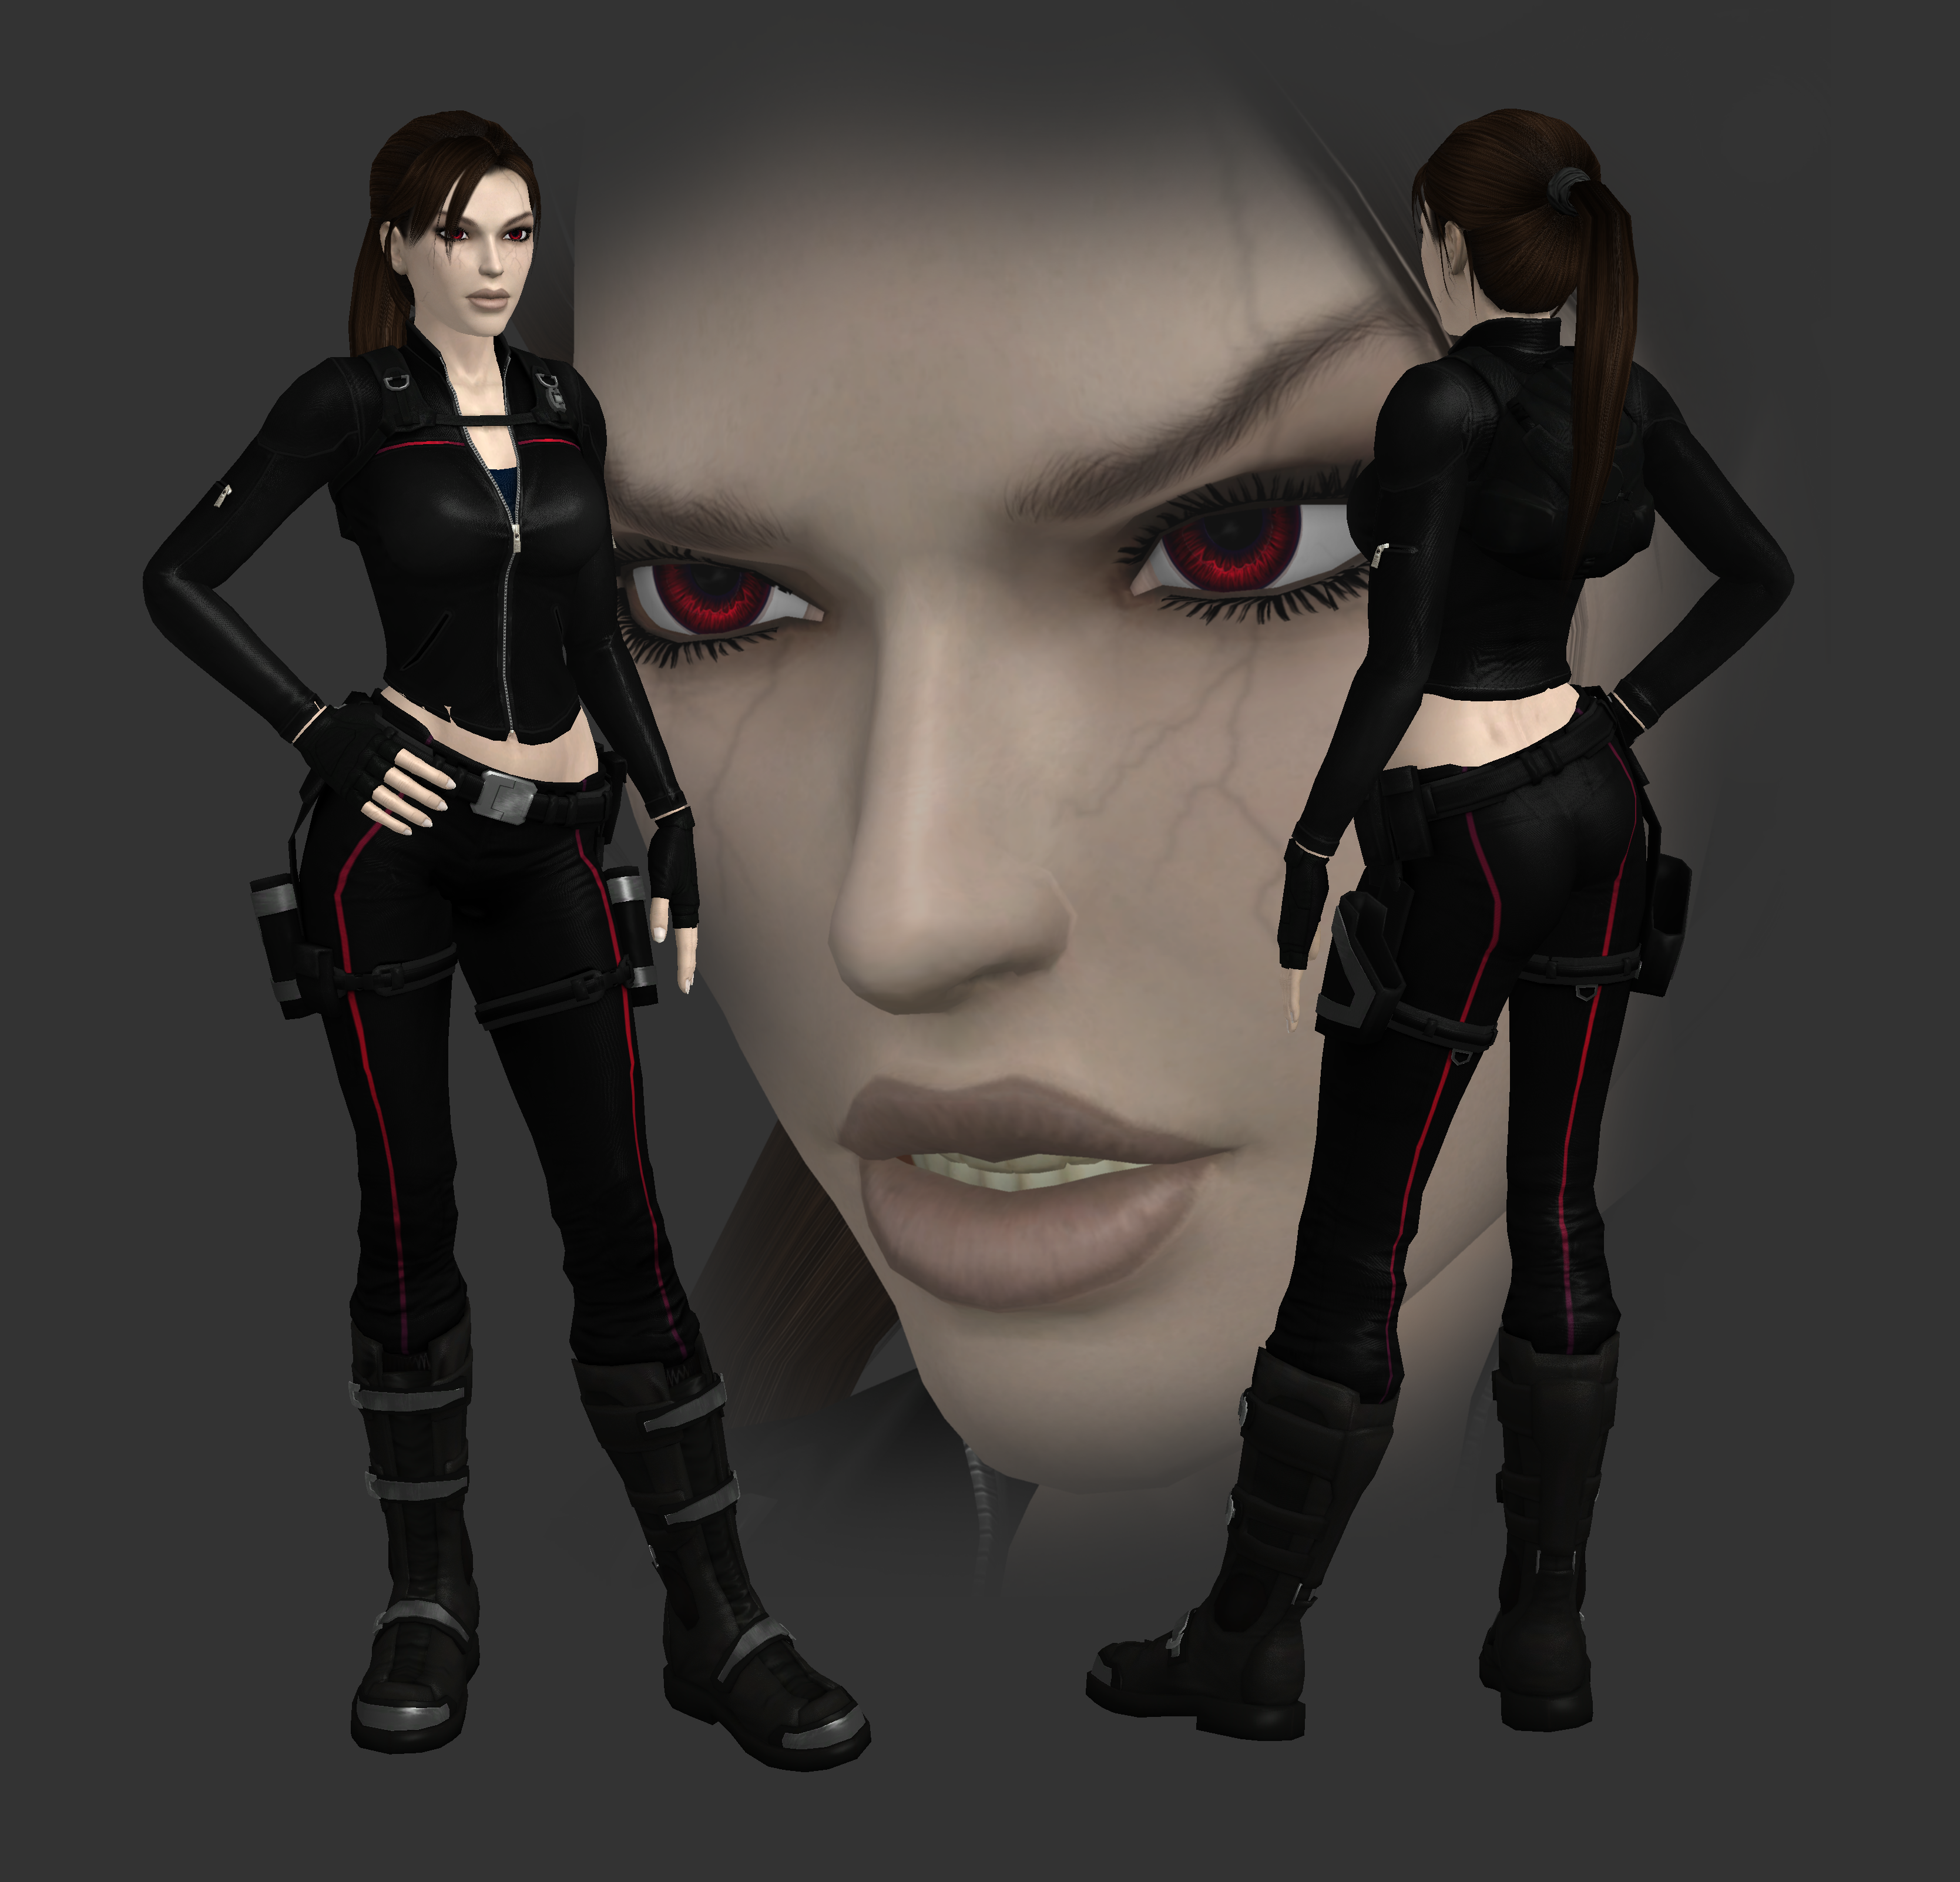 3d Tomb Raider Wallpaper: Lara Croft Vampire Version By Spuros12 By Spuros12 On